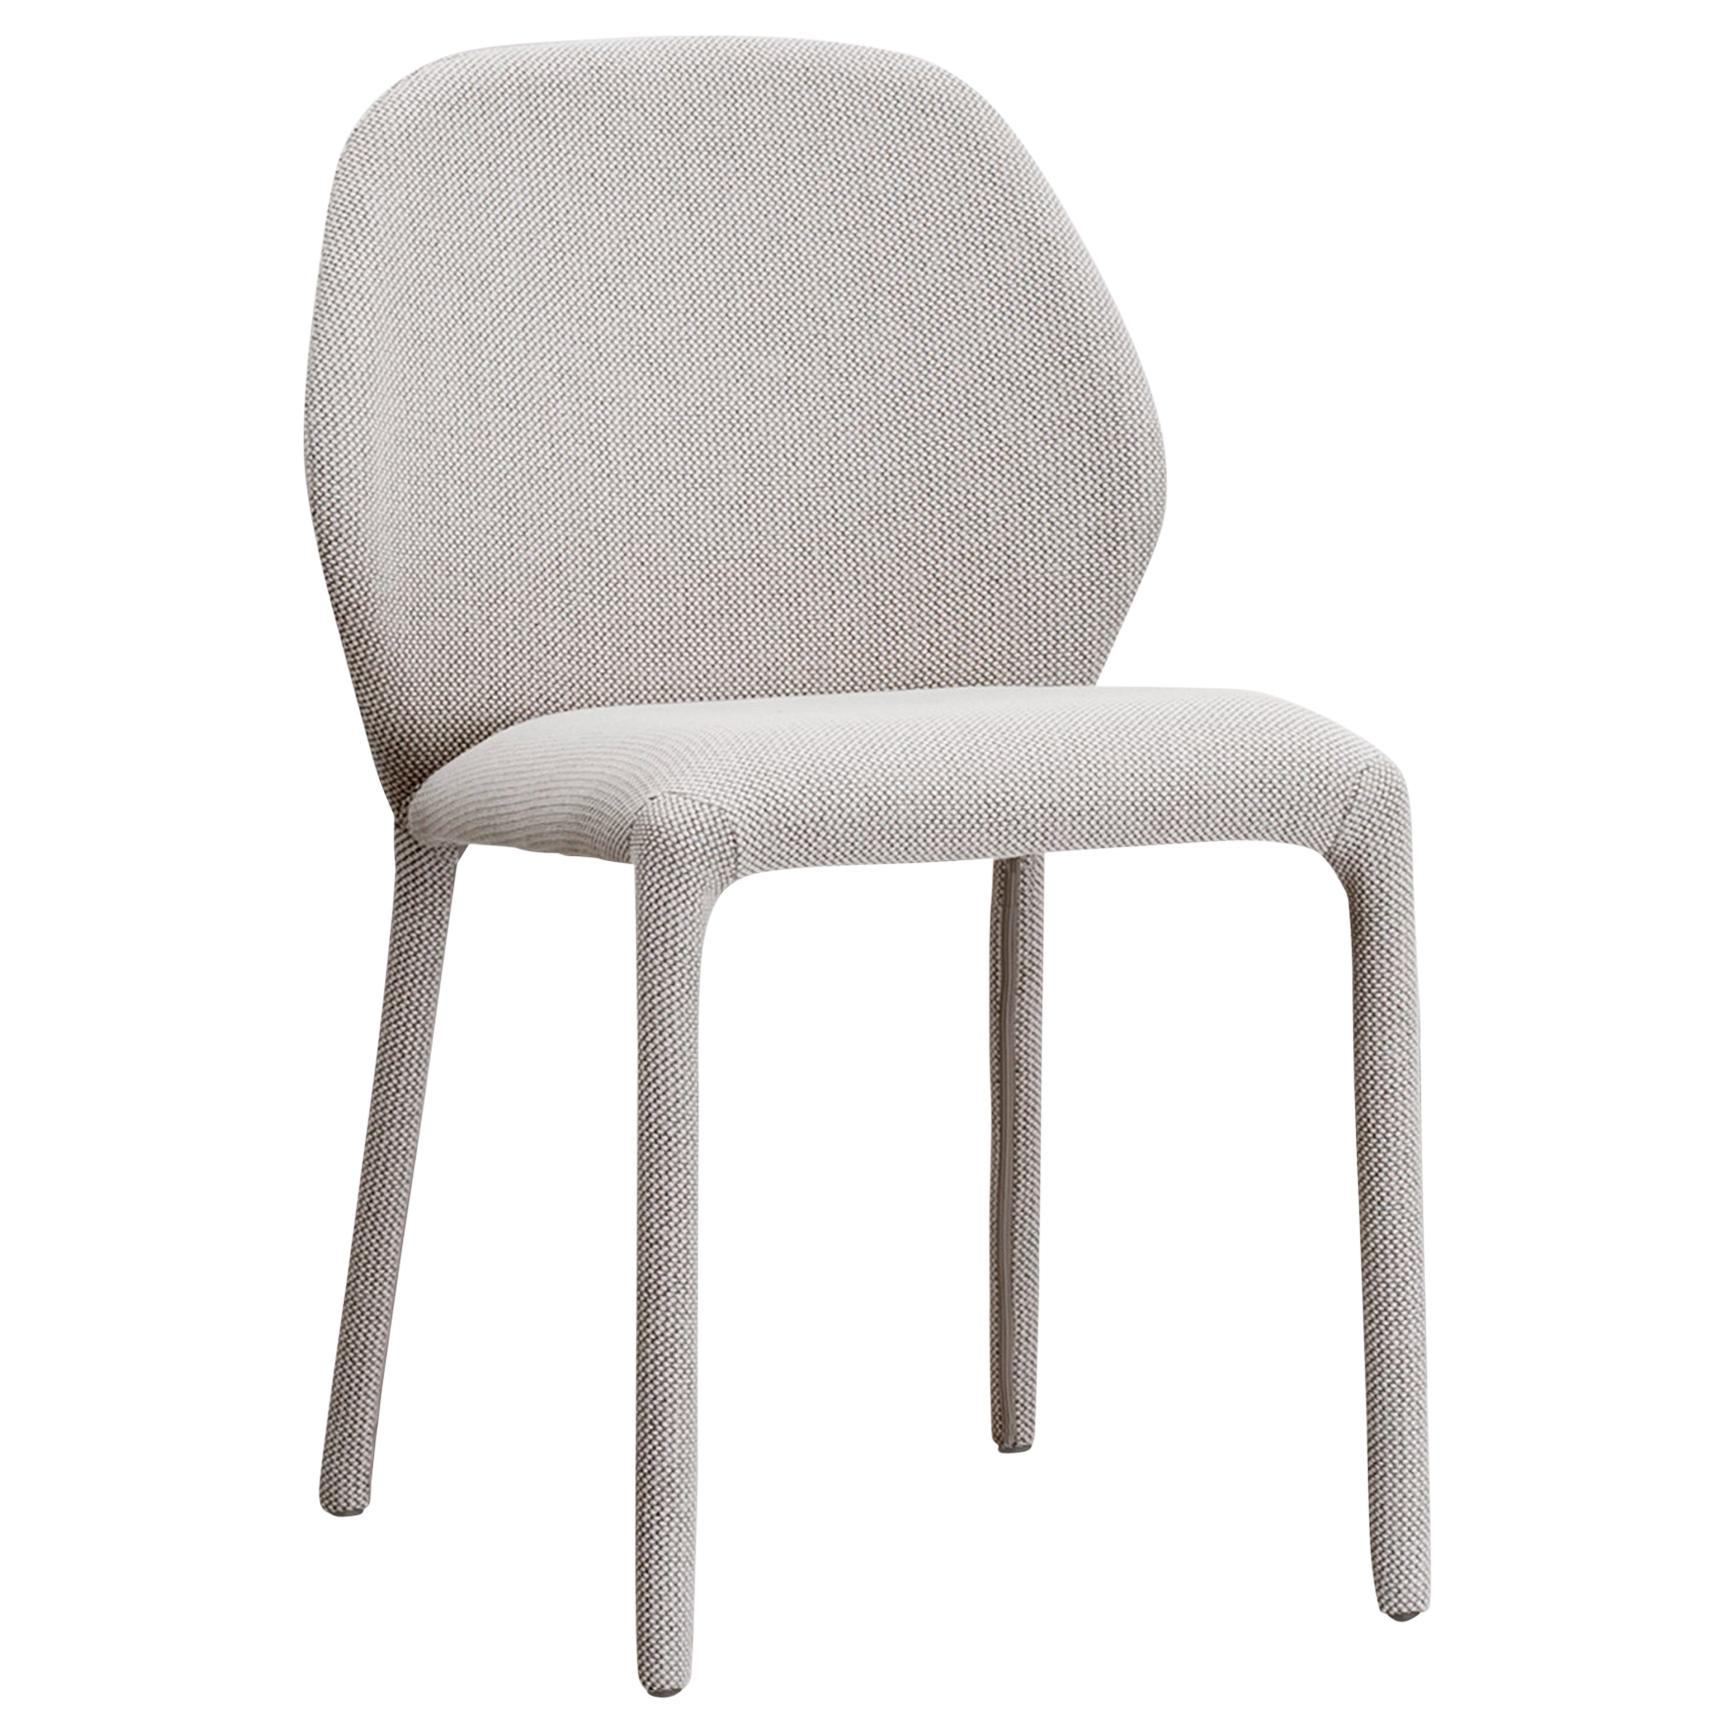 Dumbo Beige Upholstered Chair by Zaven